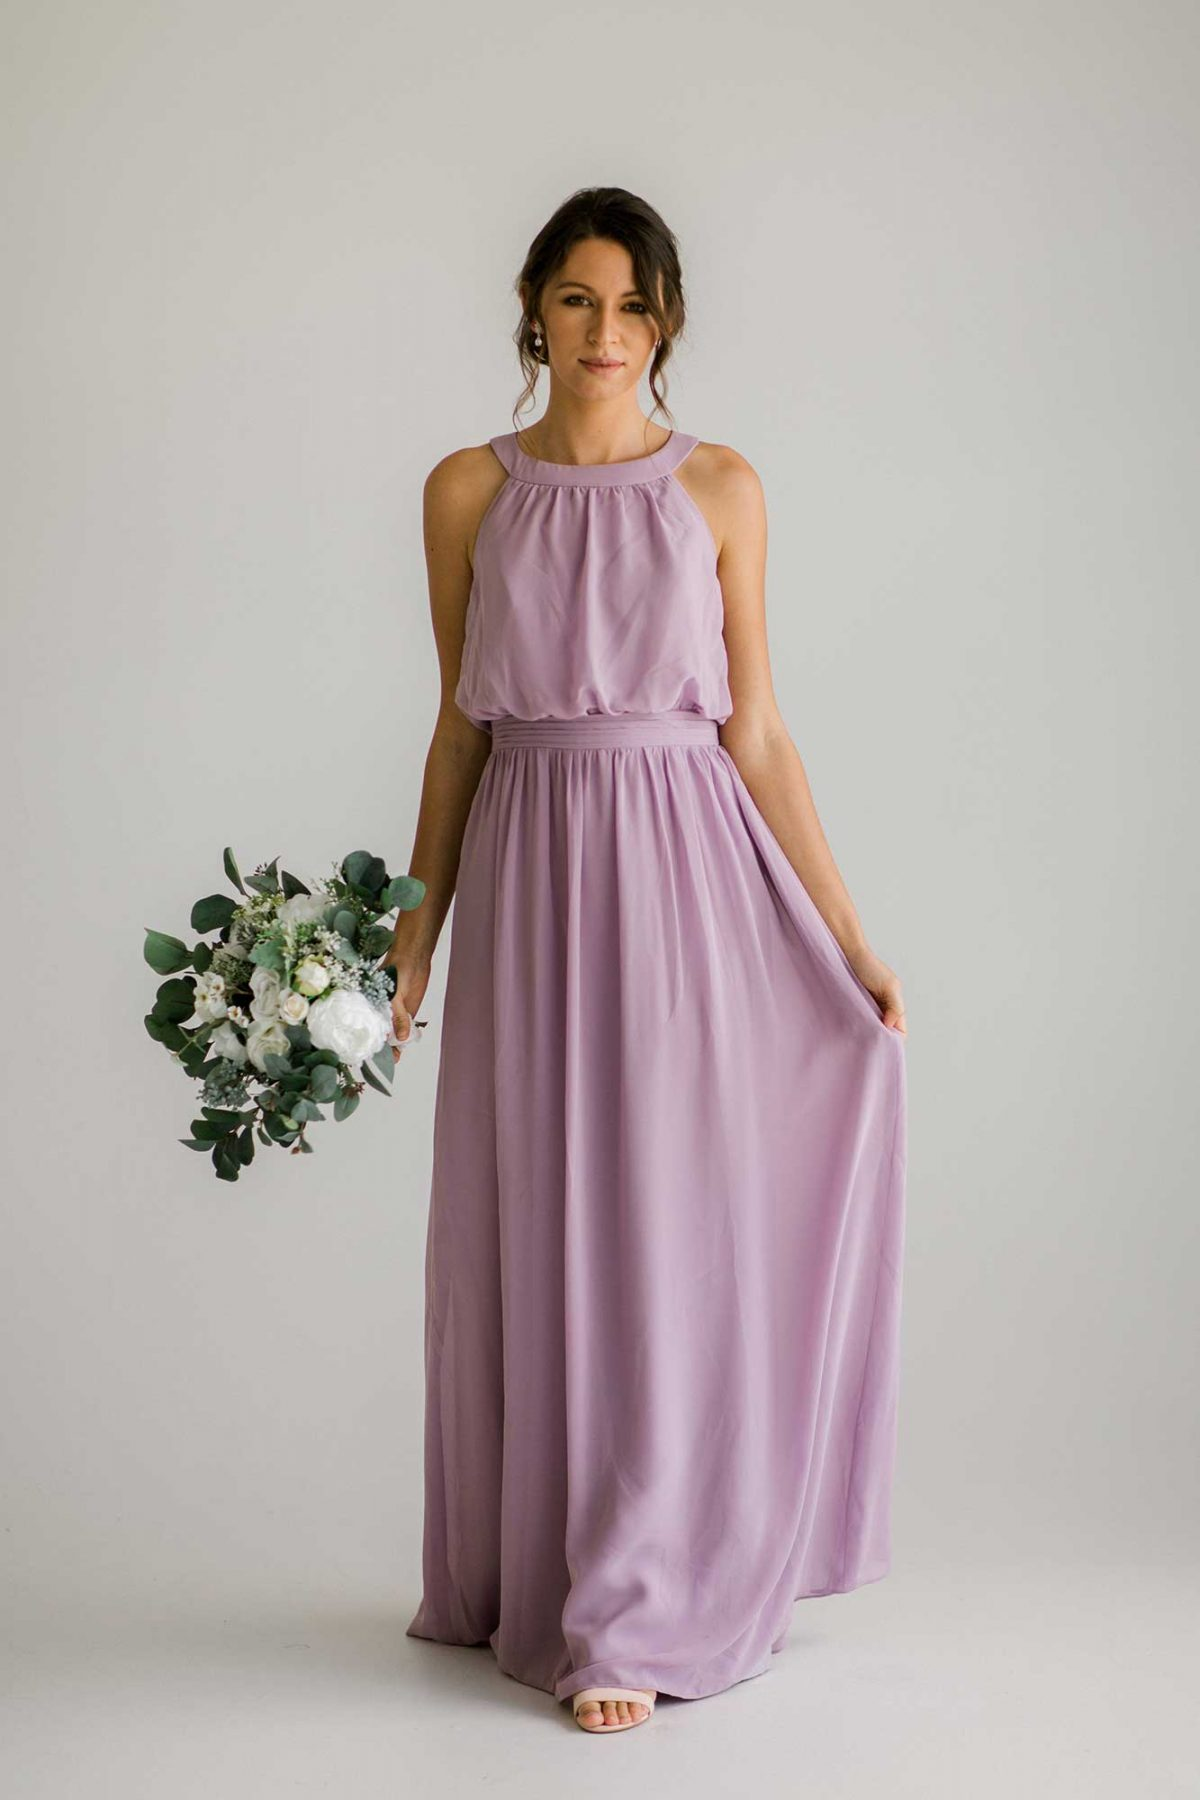 Cora dress in lilac colour front view